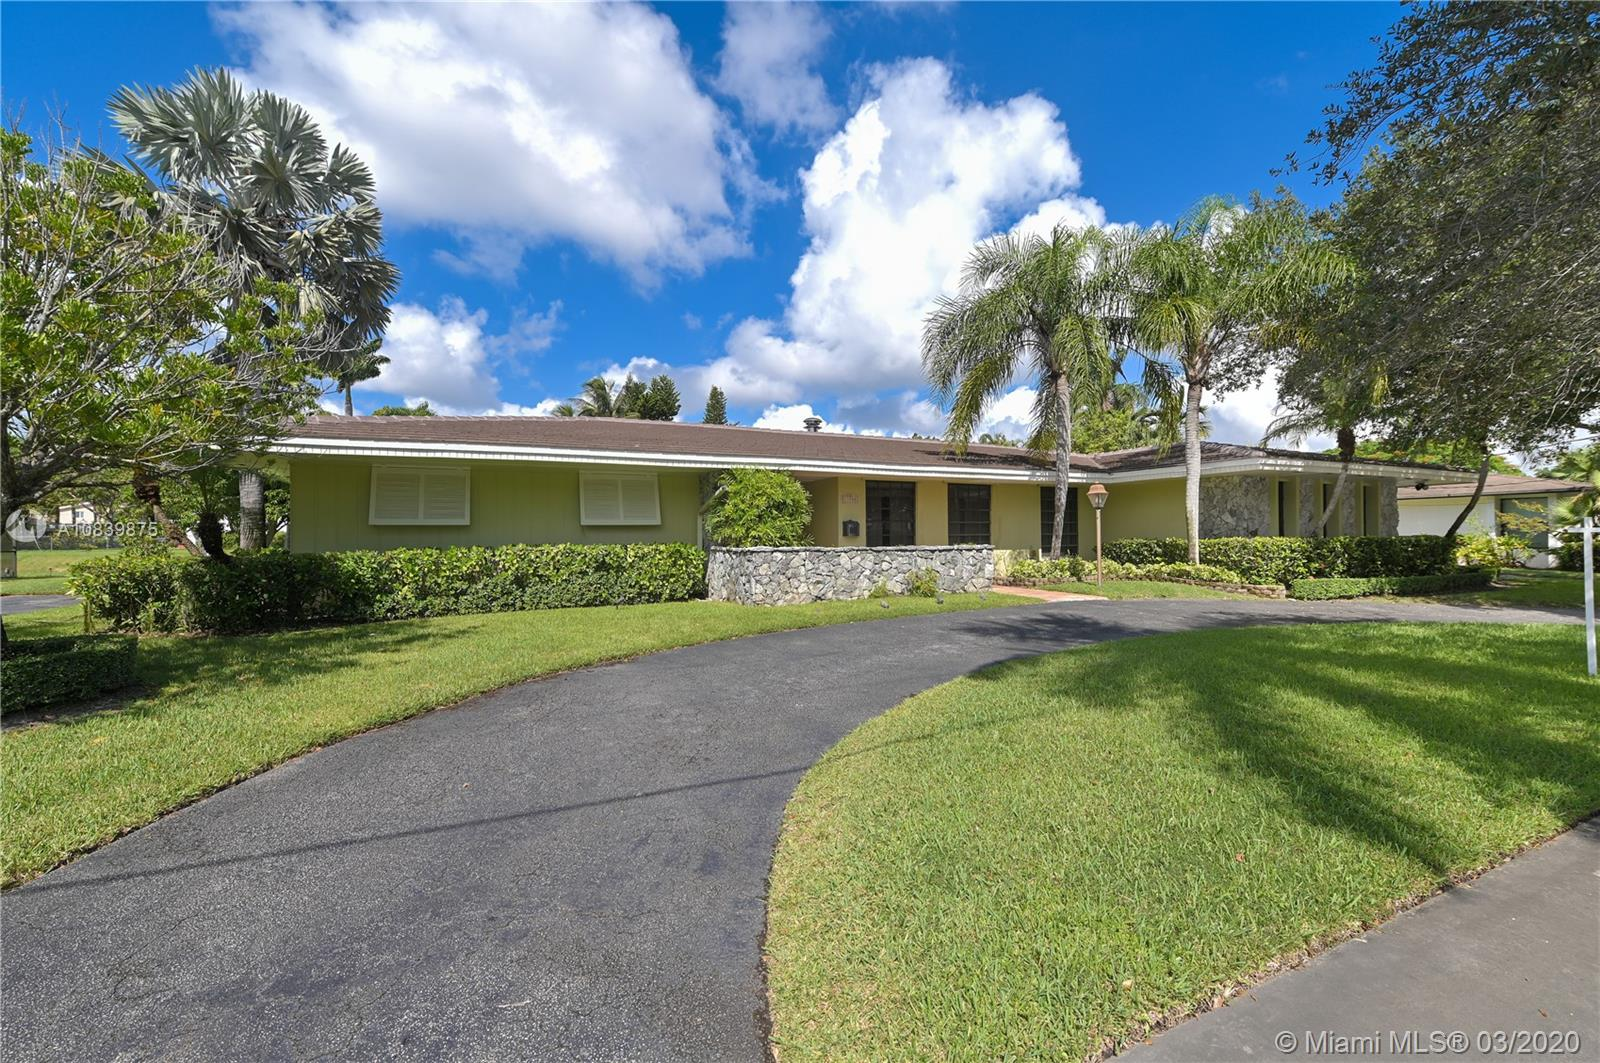 11700 SW 72nd Ave, Pinecrest, Florida 33156, 4 Bedrooms Bedrooms, ,3 BathroomsBathrooms,Residential,For Sale,11700 SW 72nd Ave,A10839875